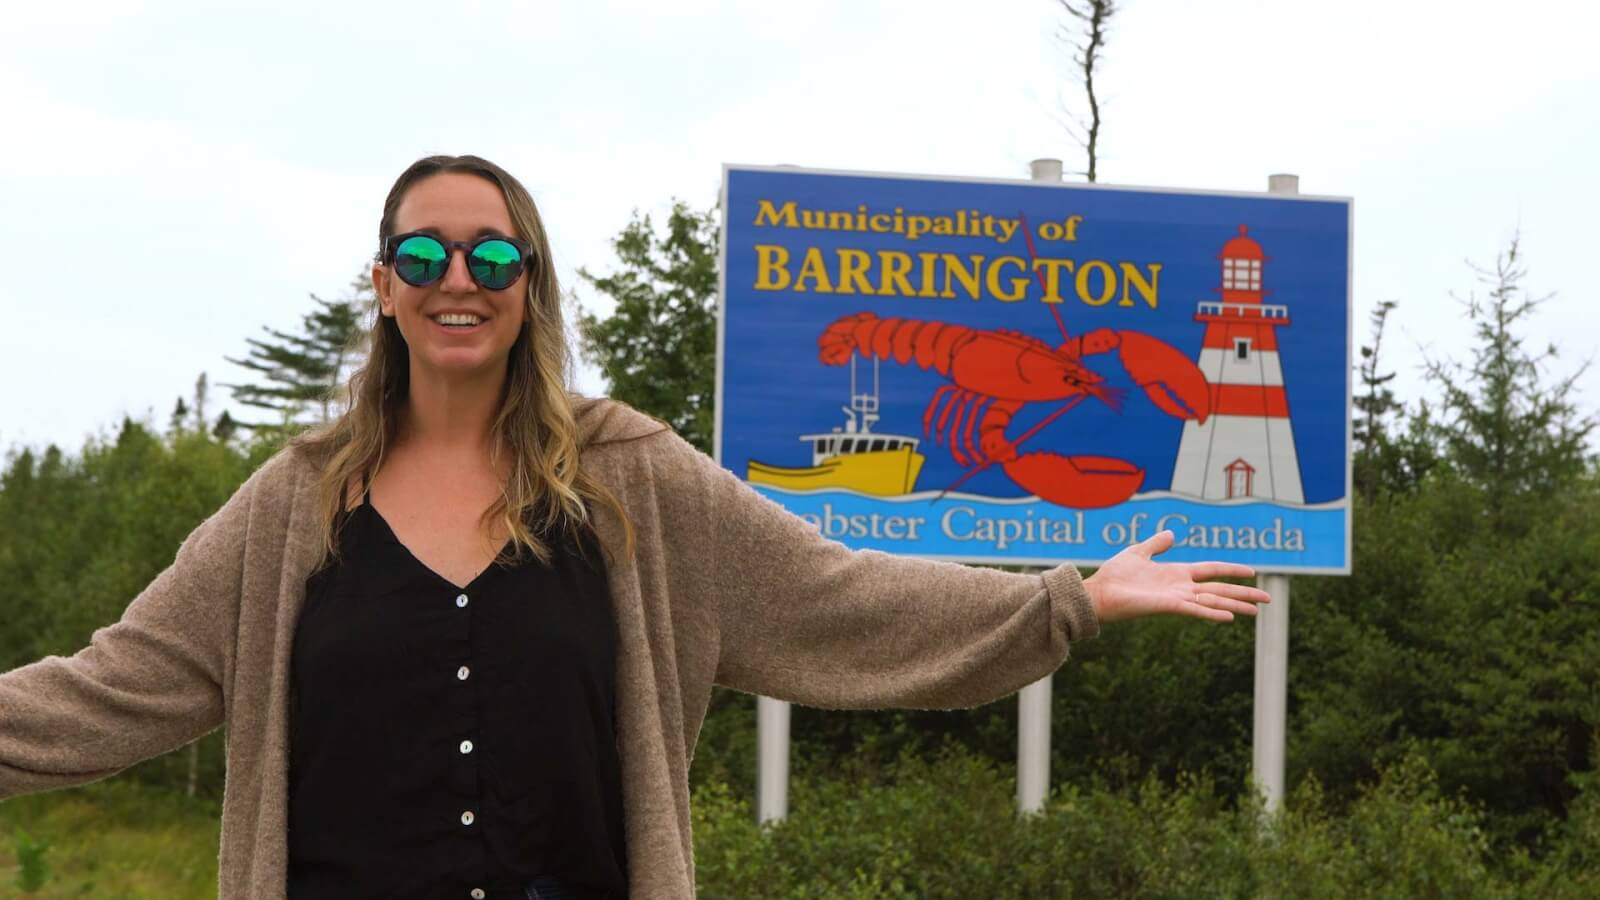 Megan in front of the Barrington Lobster Capital of Canada sign